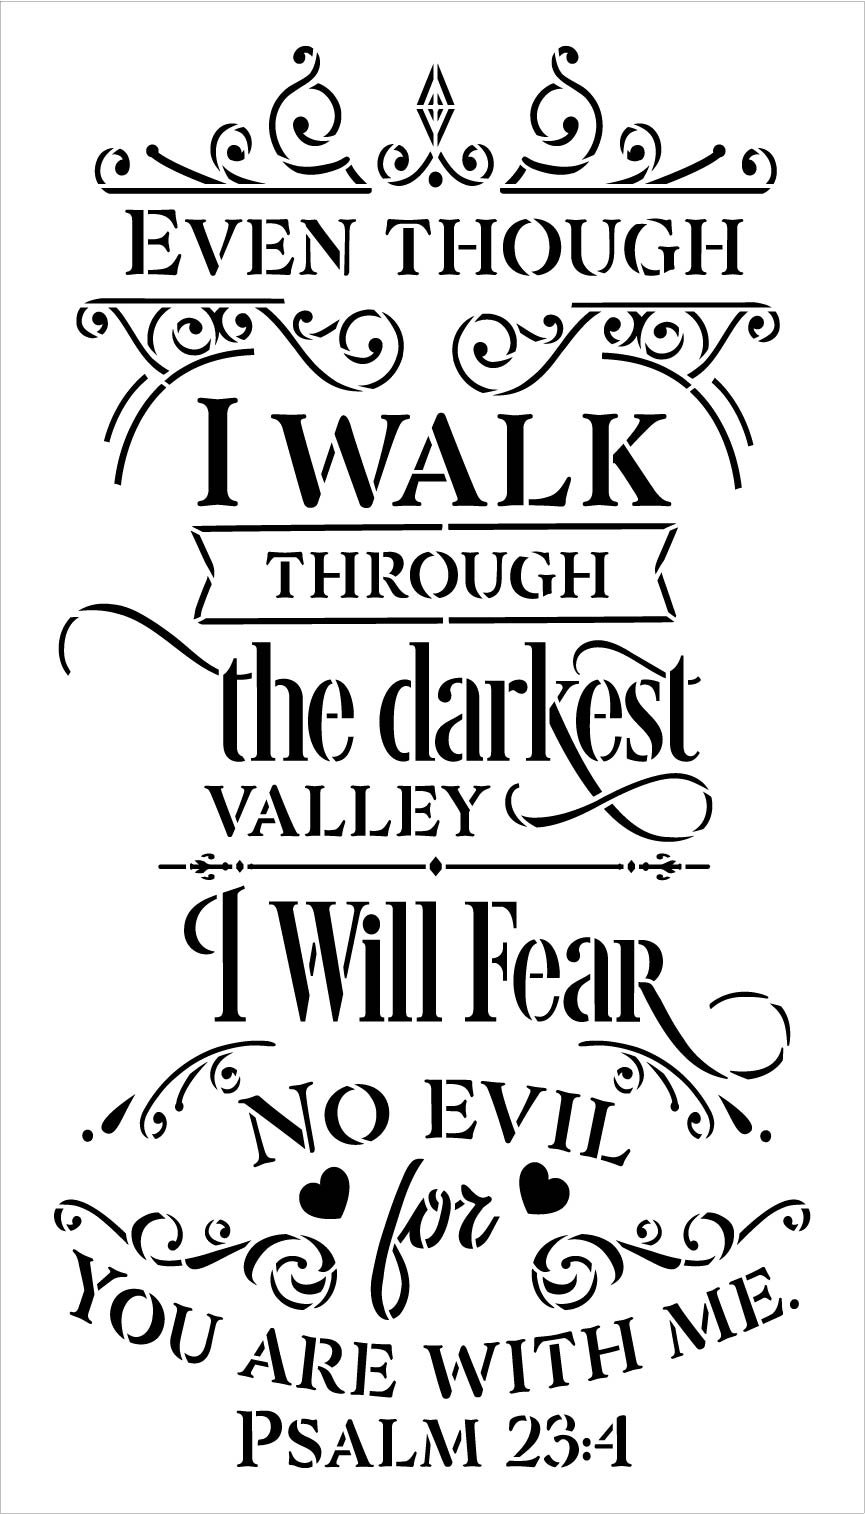 I Will Fear No Evil You are with Me Stencil by StudioR12 | Psalm 23:4 Bible Verse | DIY Embellished Faith Home Decor | Select Size